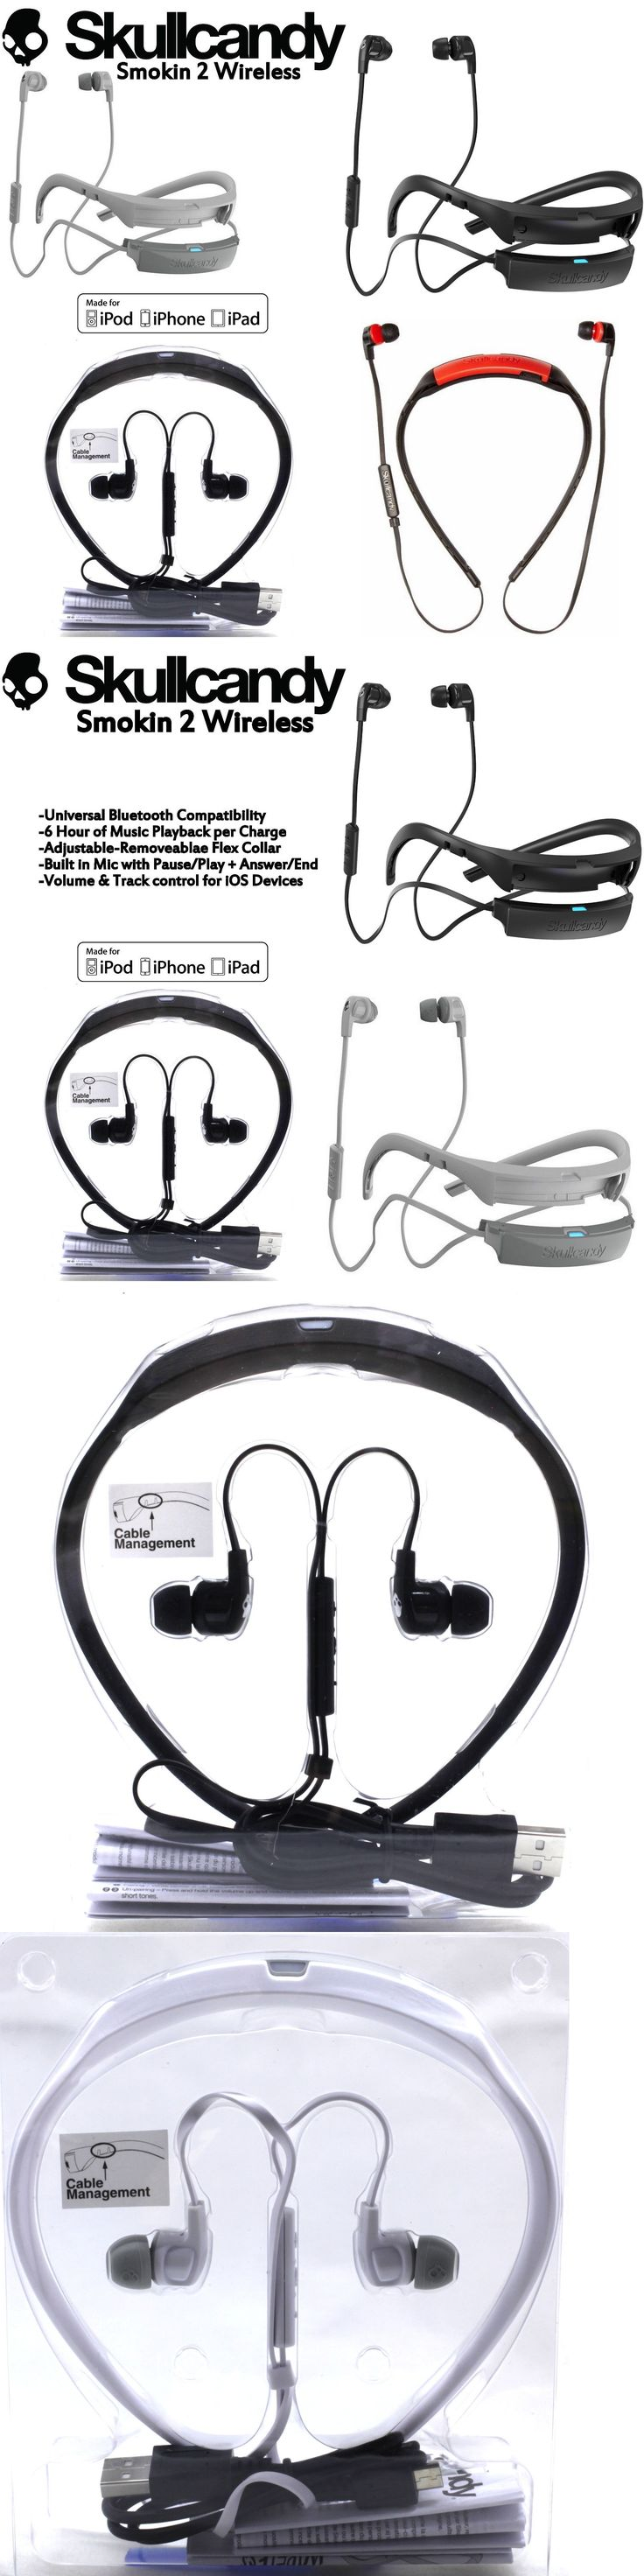 electronics: New Skullcandy Smokin Buds 2 Wireless Bluetooth Earphones With Mic Black White BUY IT NOW ONLY: $35.97